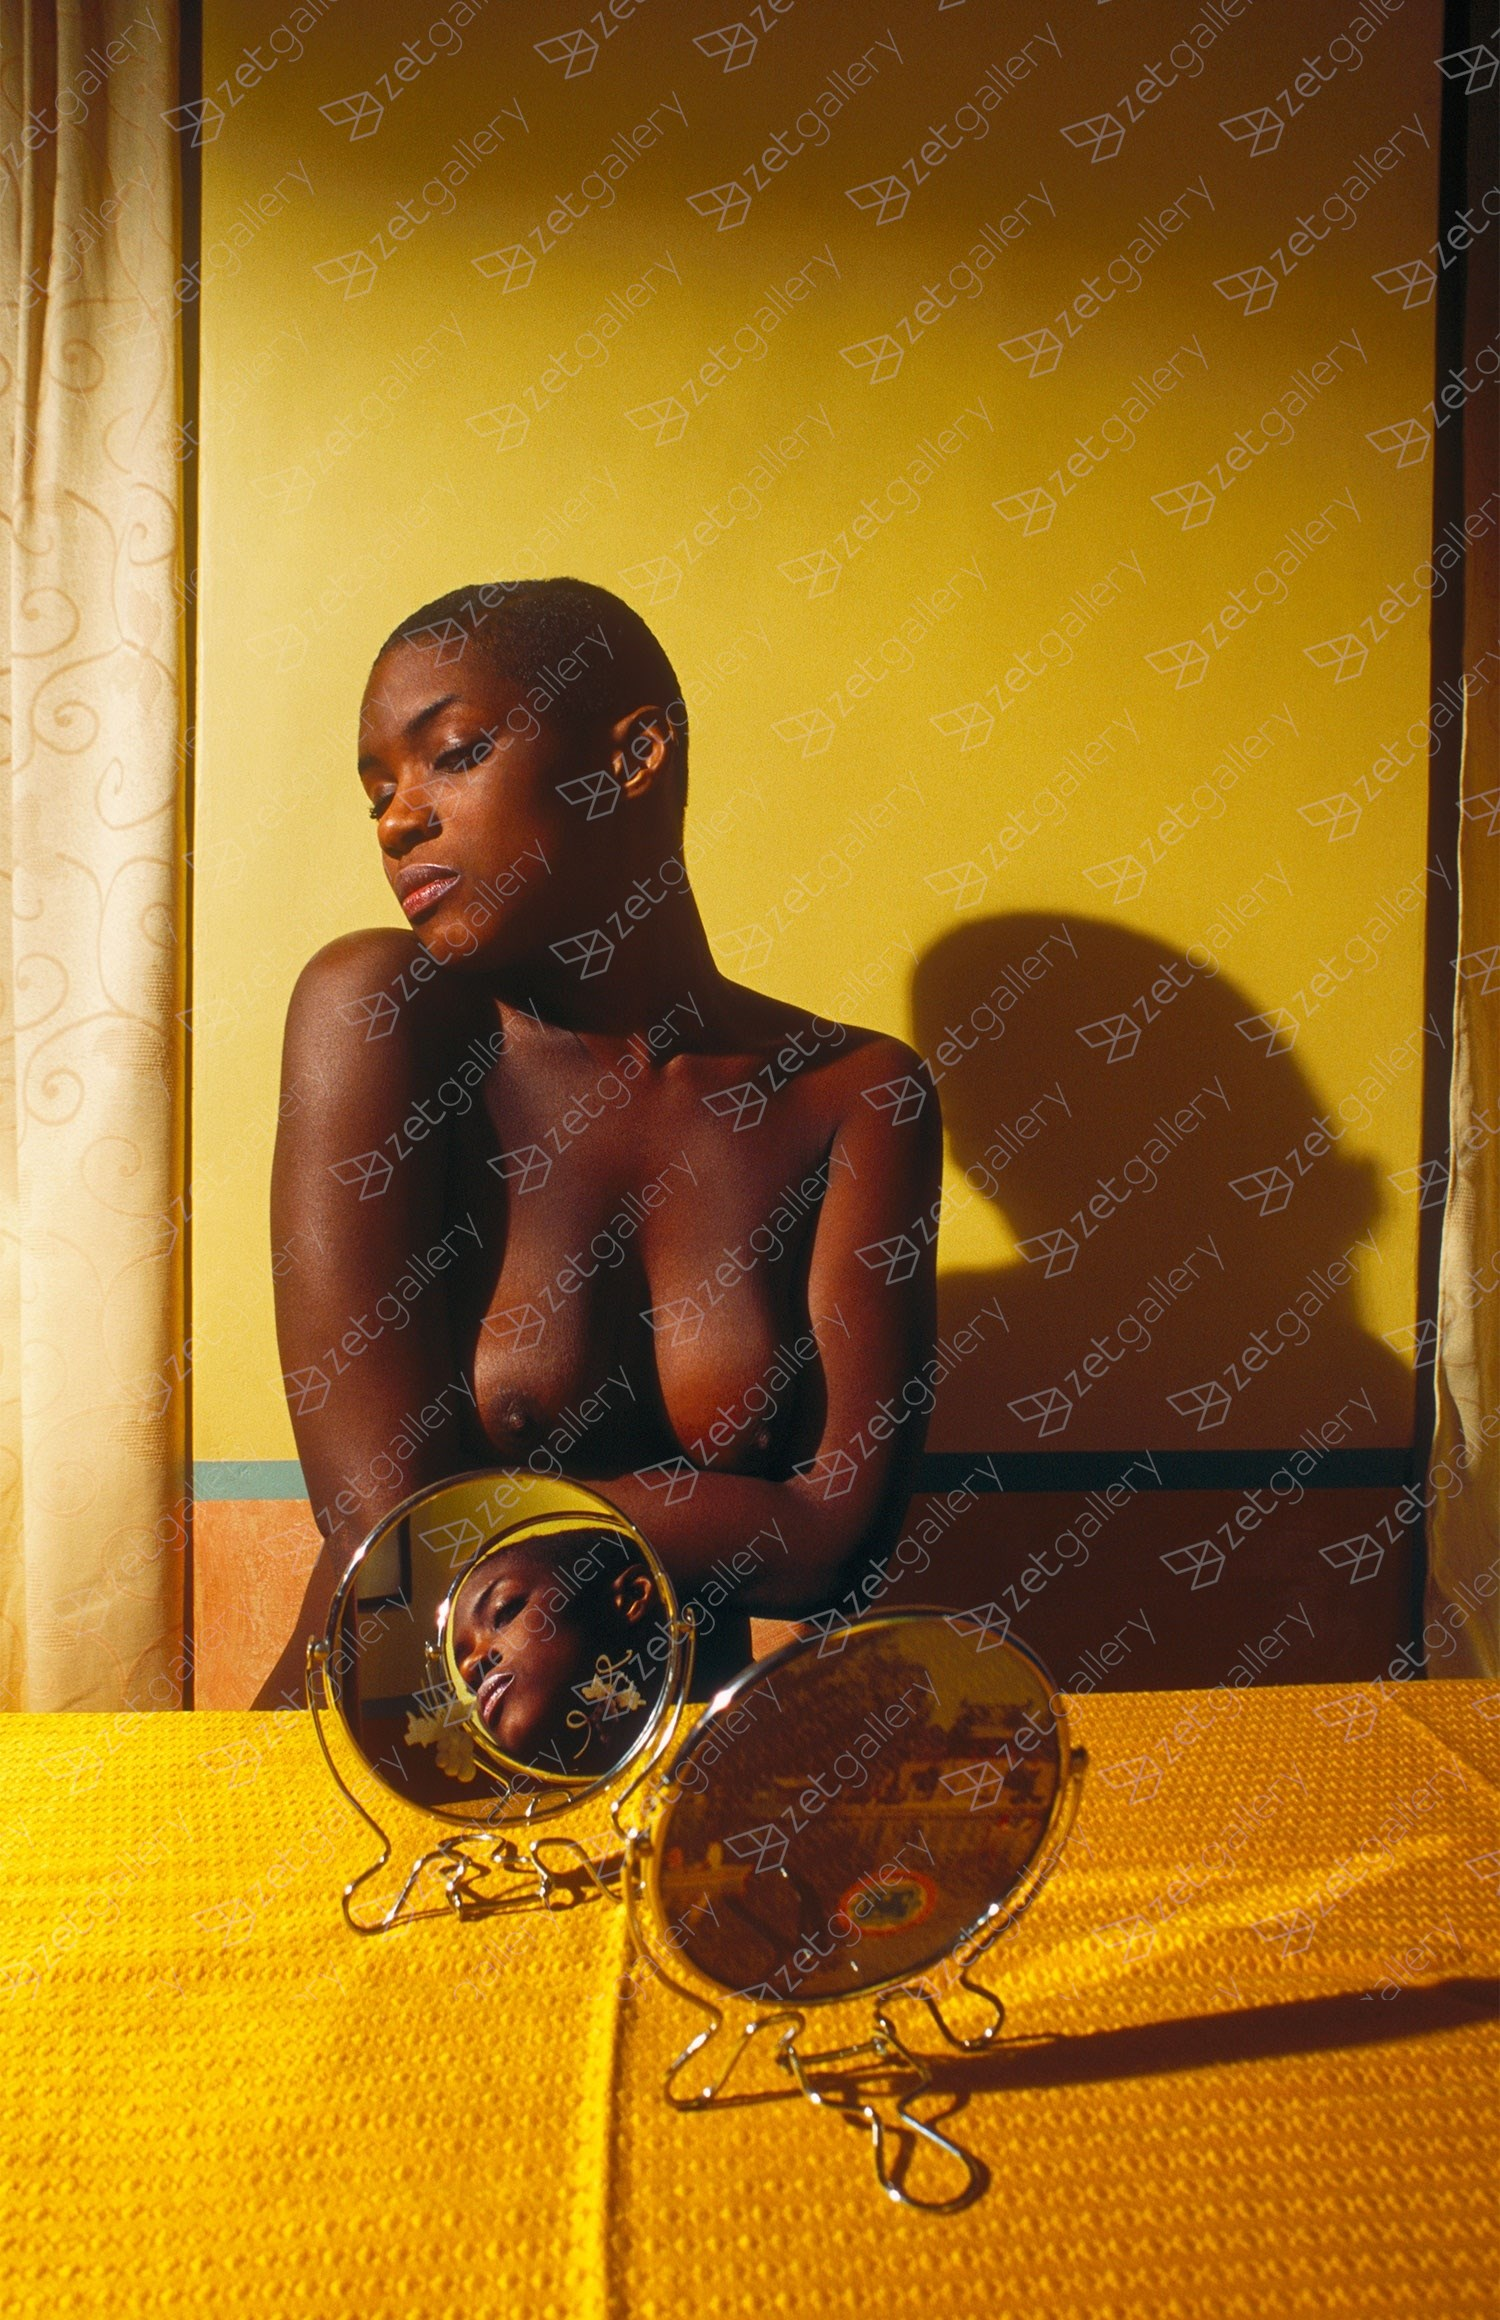 Yolanda Mirror, original Avant-Garde Analog Photography by Alva Bernadine